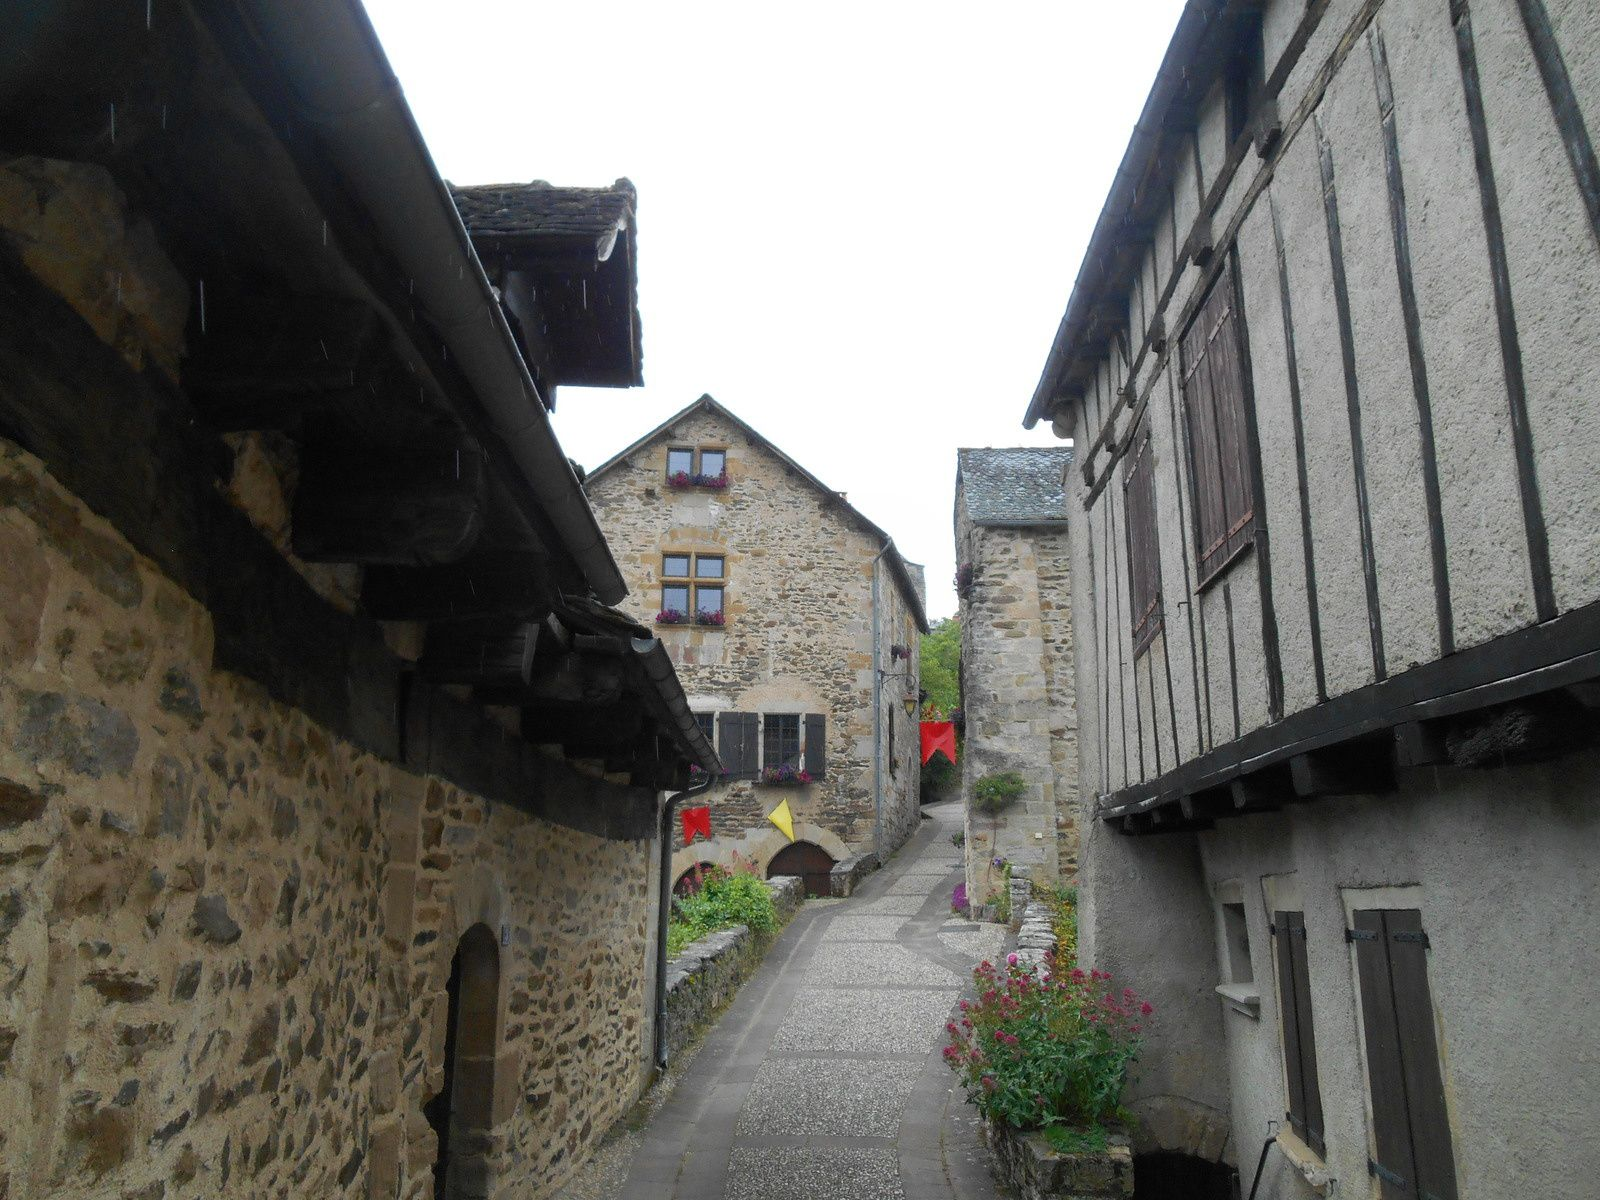 Les plus beaux villages de France: Najac (Aveyron)